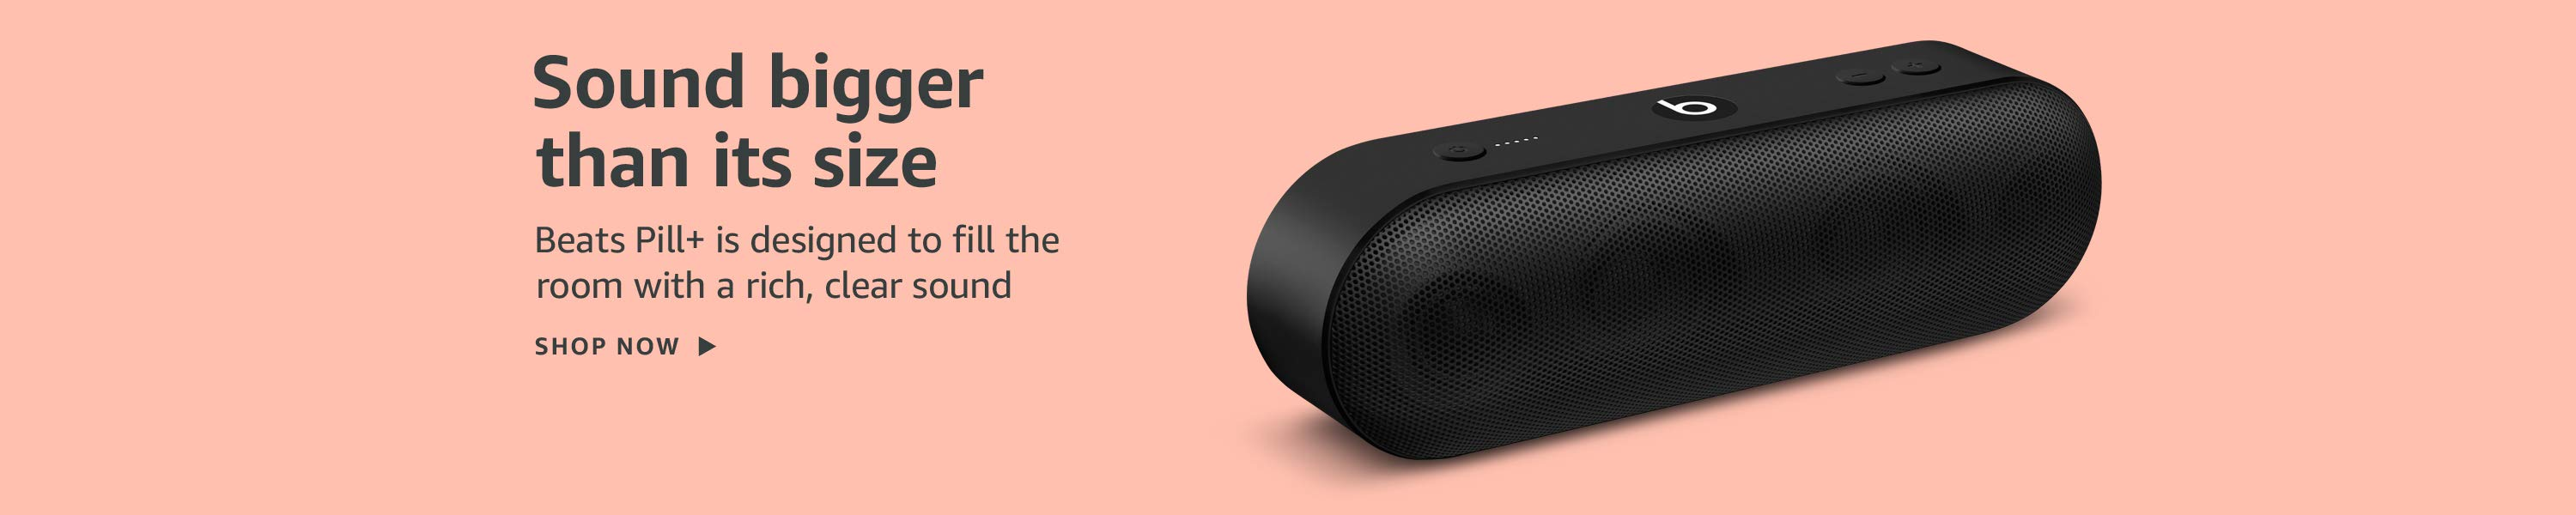 Sound bigger than its size. Beats Pill+ is designed to fill the room with a rich, clear sound.